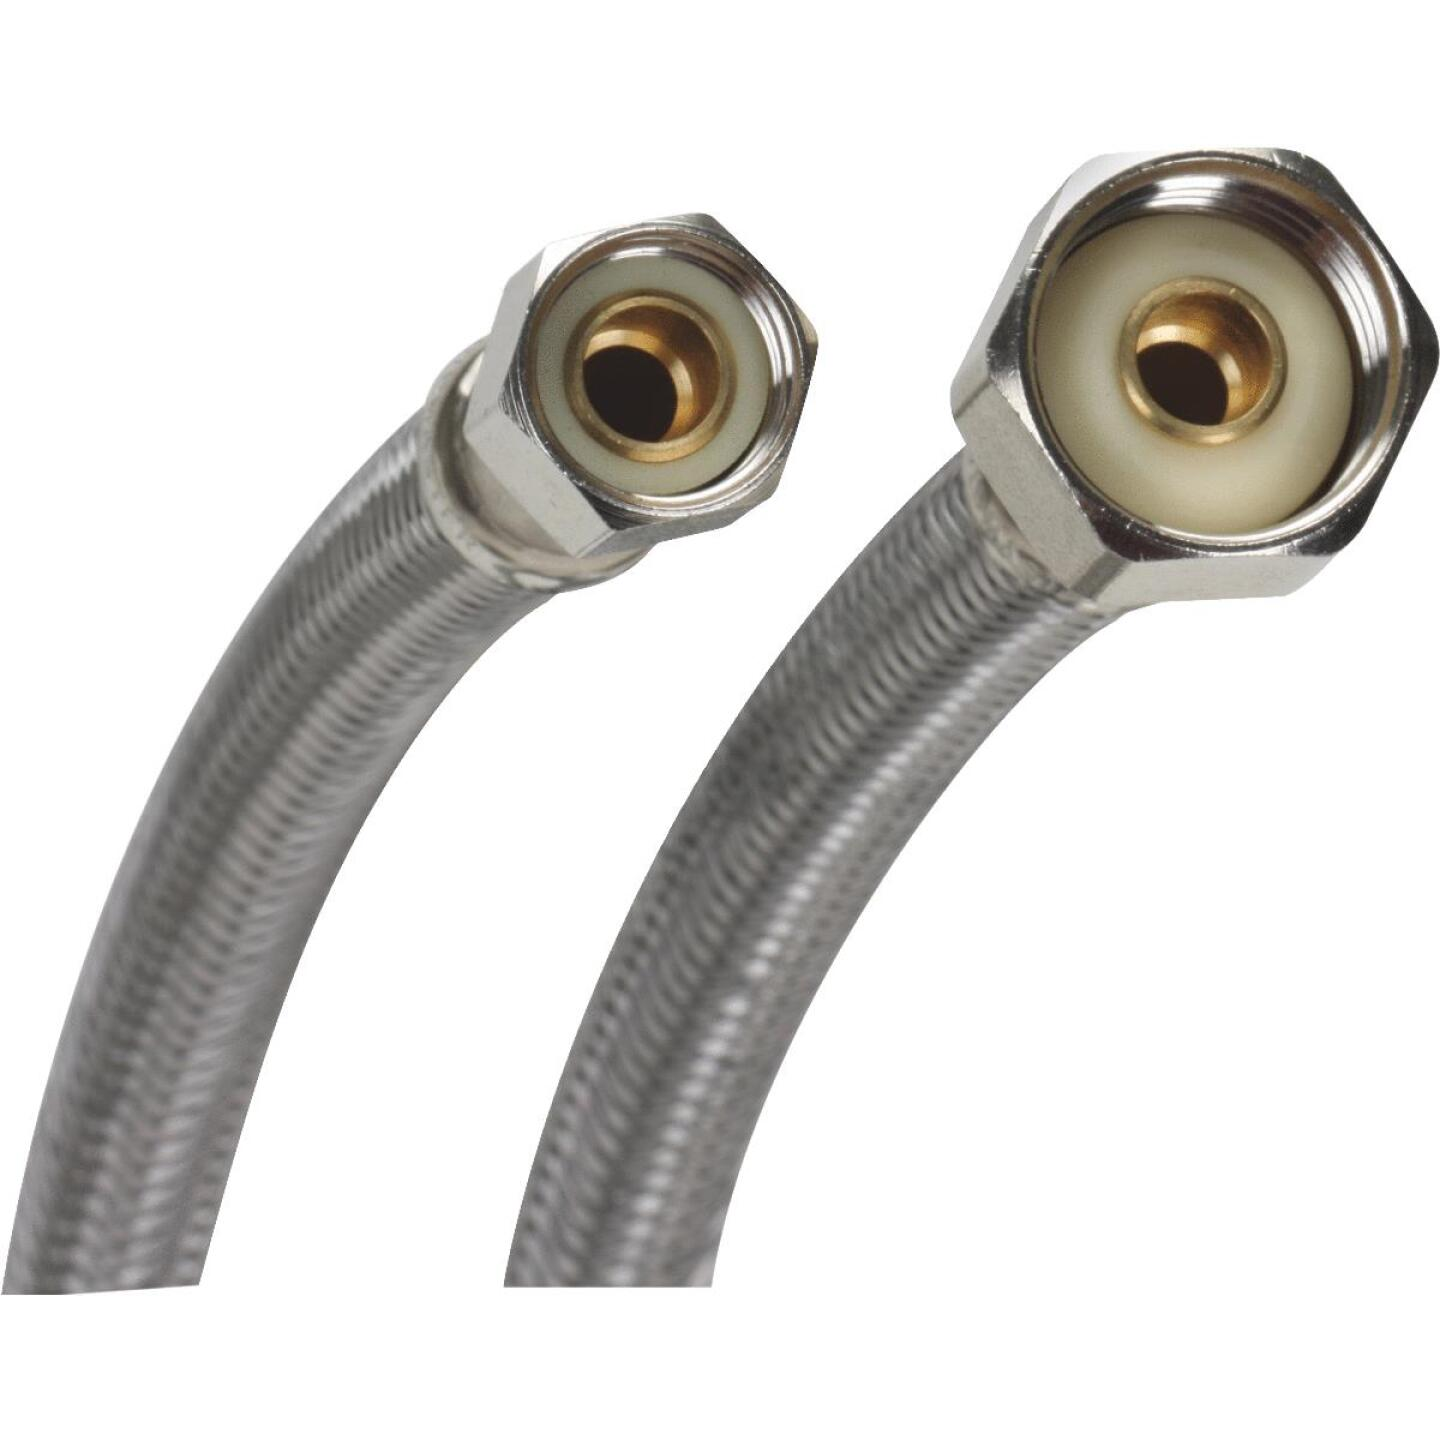 Fluidmaster 3/8 F X 1/2 In. F X 16 In. L Stainless Steel Faucet Connector Image 1